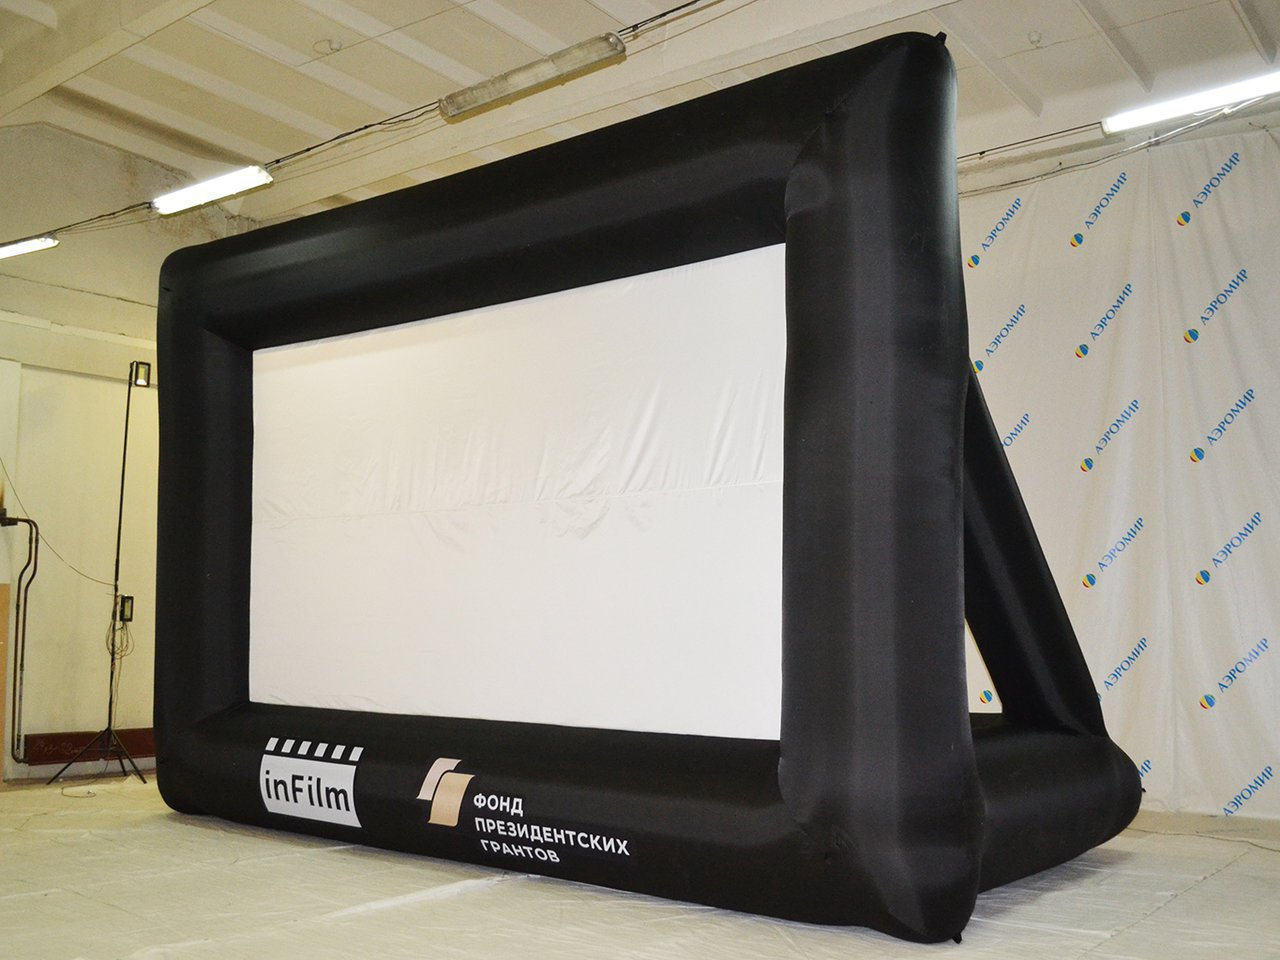 Large inflatable screen